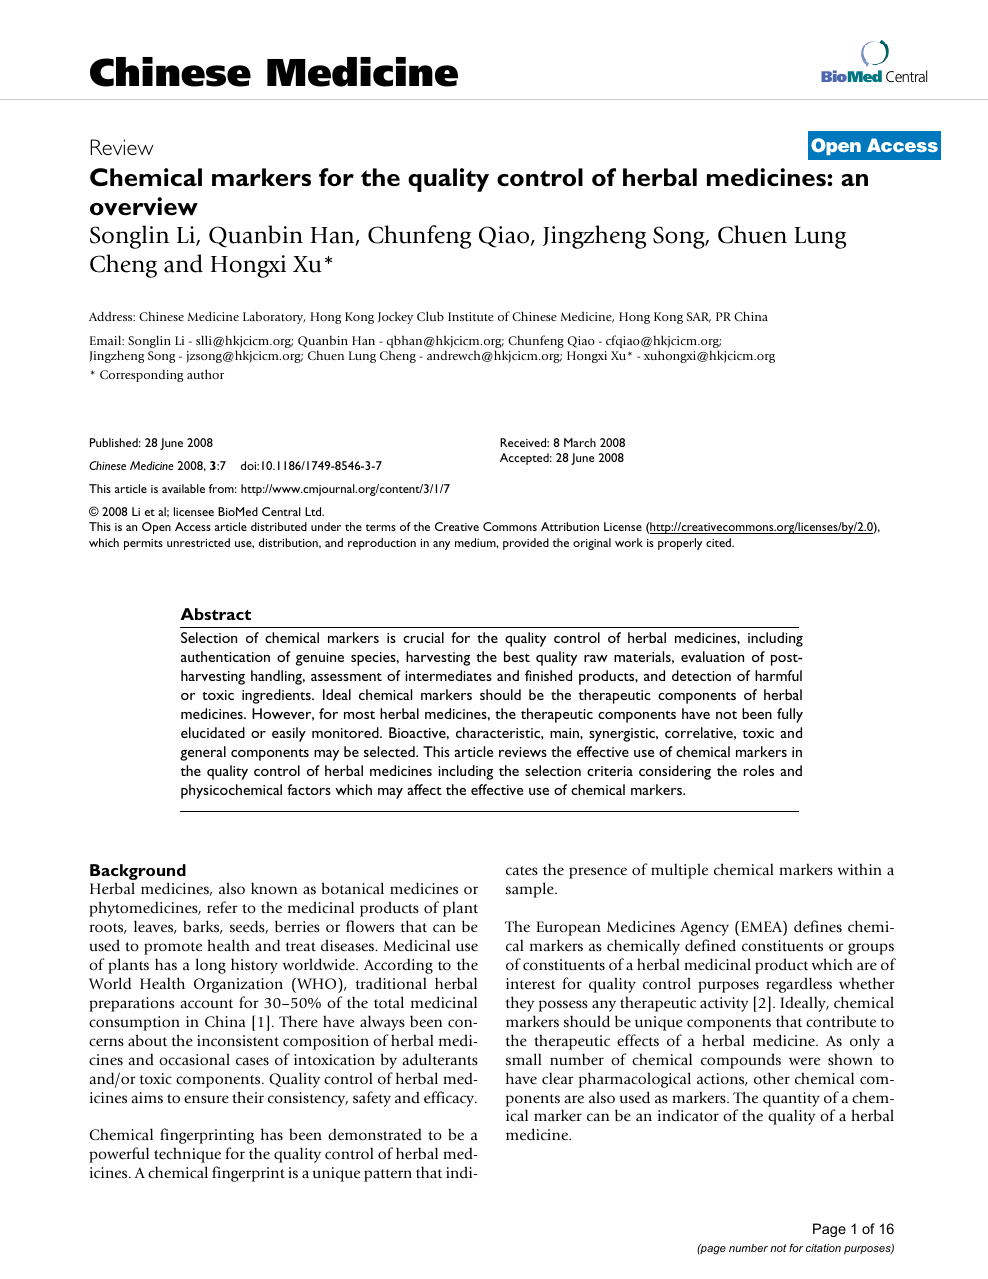 Chemical markers for the quality control of herbal medicines